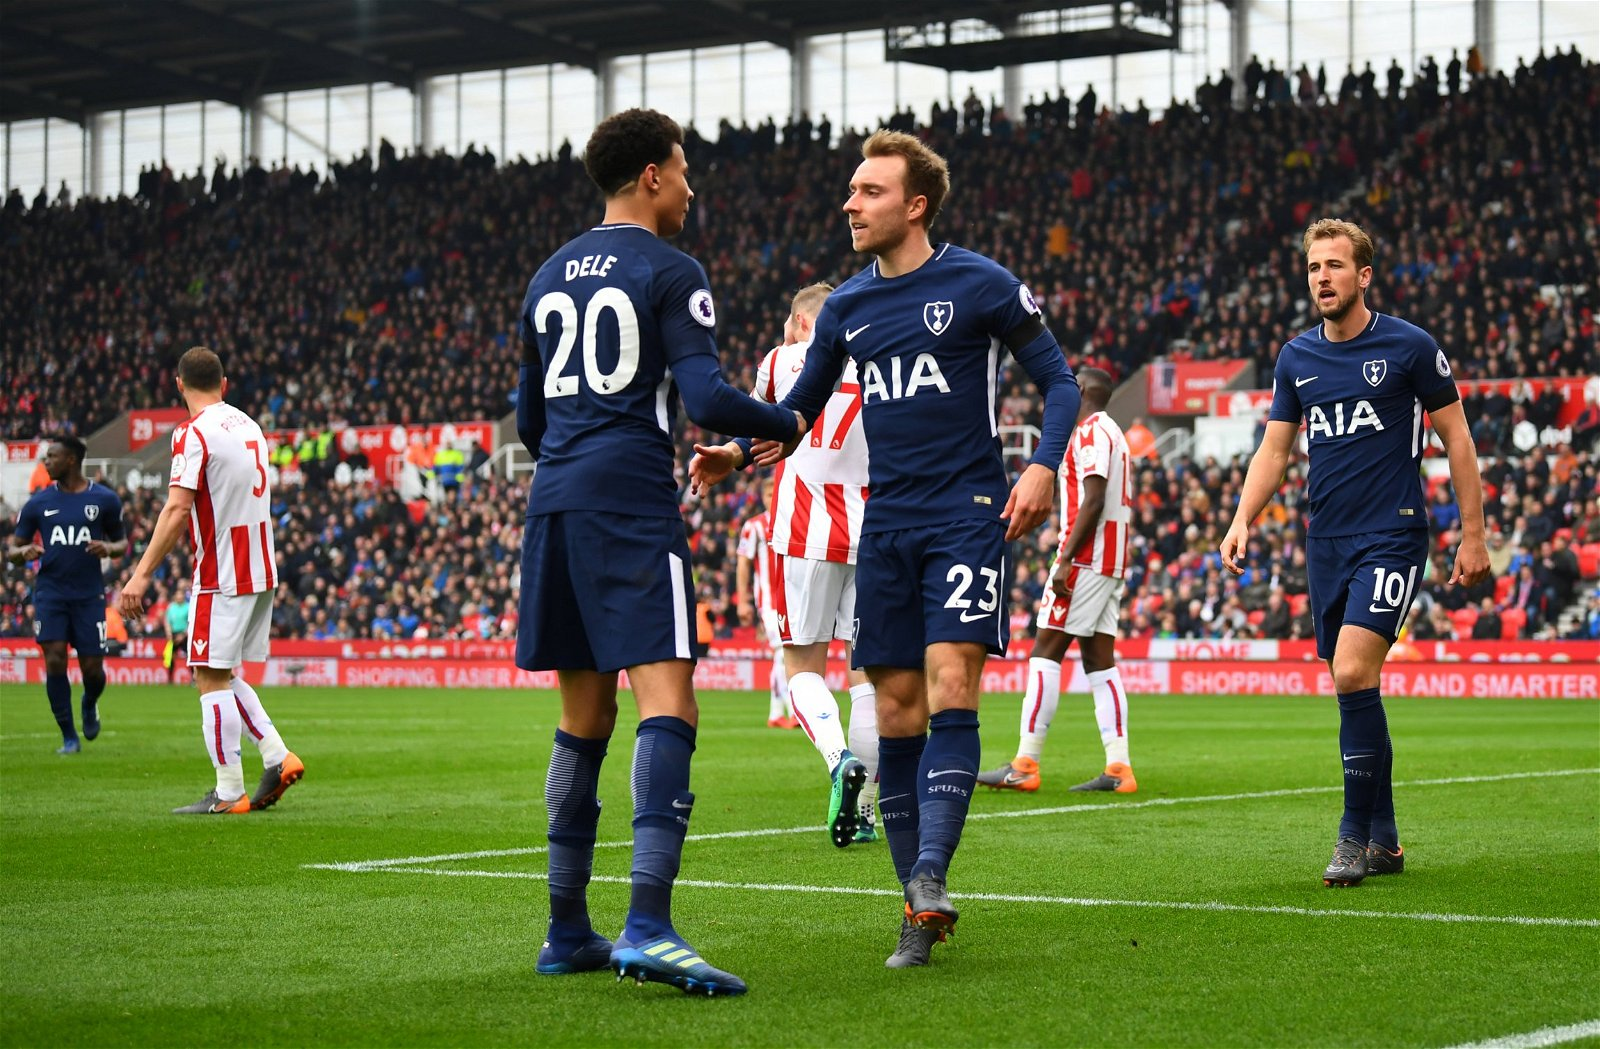 Christian Eriksen, Dele Alli and Harry Kane of Tottenham Hotspur